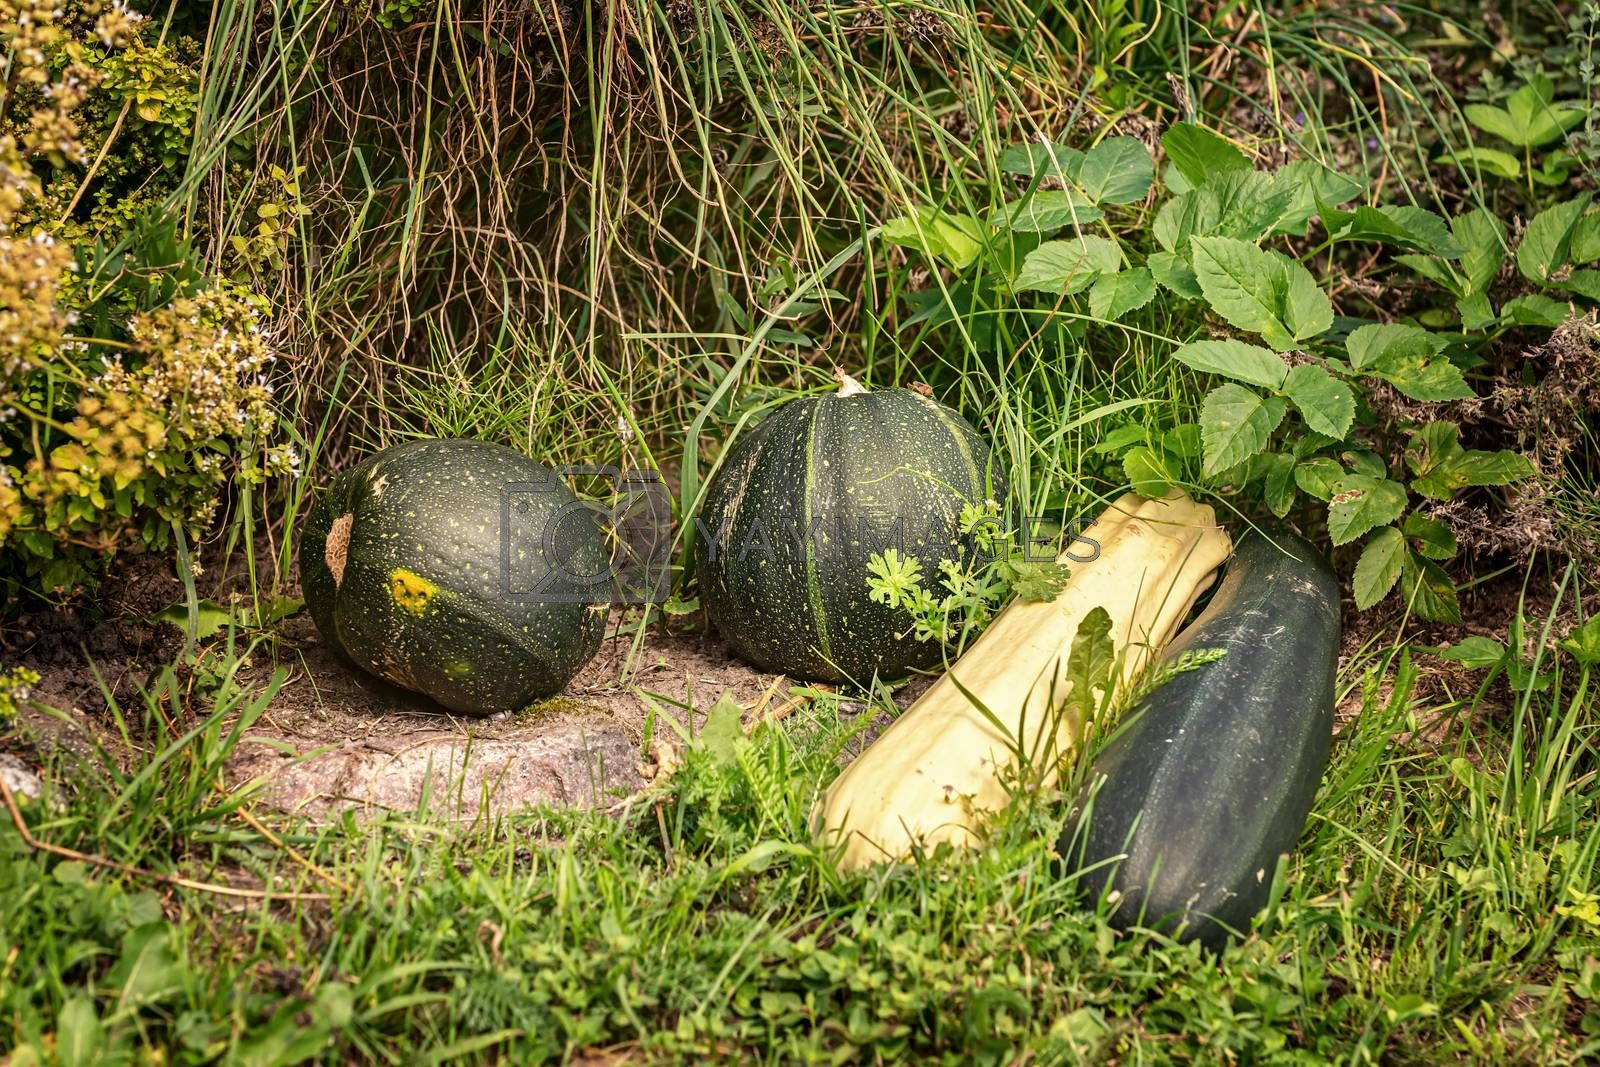 Pumpkins and squashes on the grass